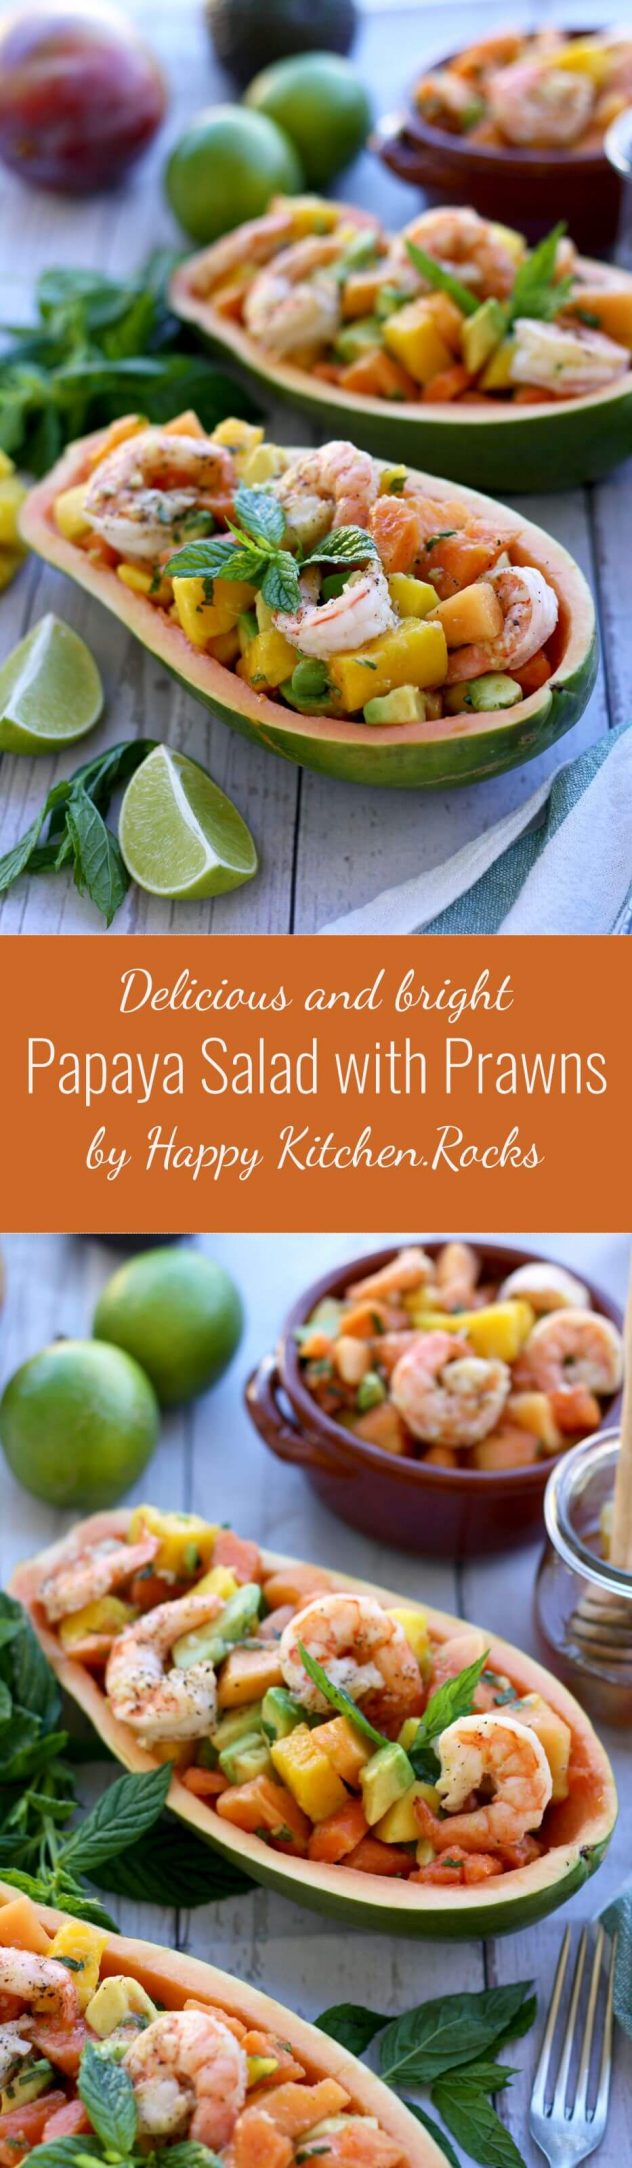 Refreshing and bright papaya salad with tropical fruits and prawn is a perfect summer salad recipe. Easy to make, gluten free, dairy-free, paleo, healthy and full of flavor!